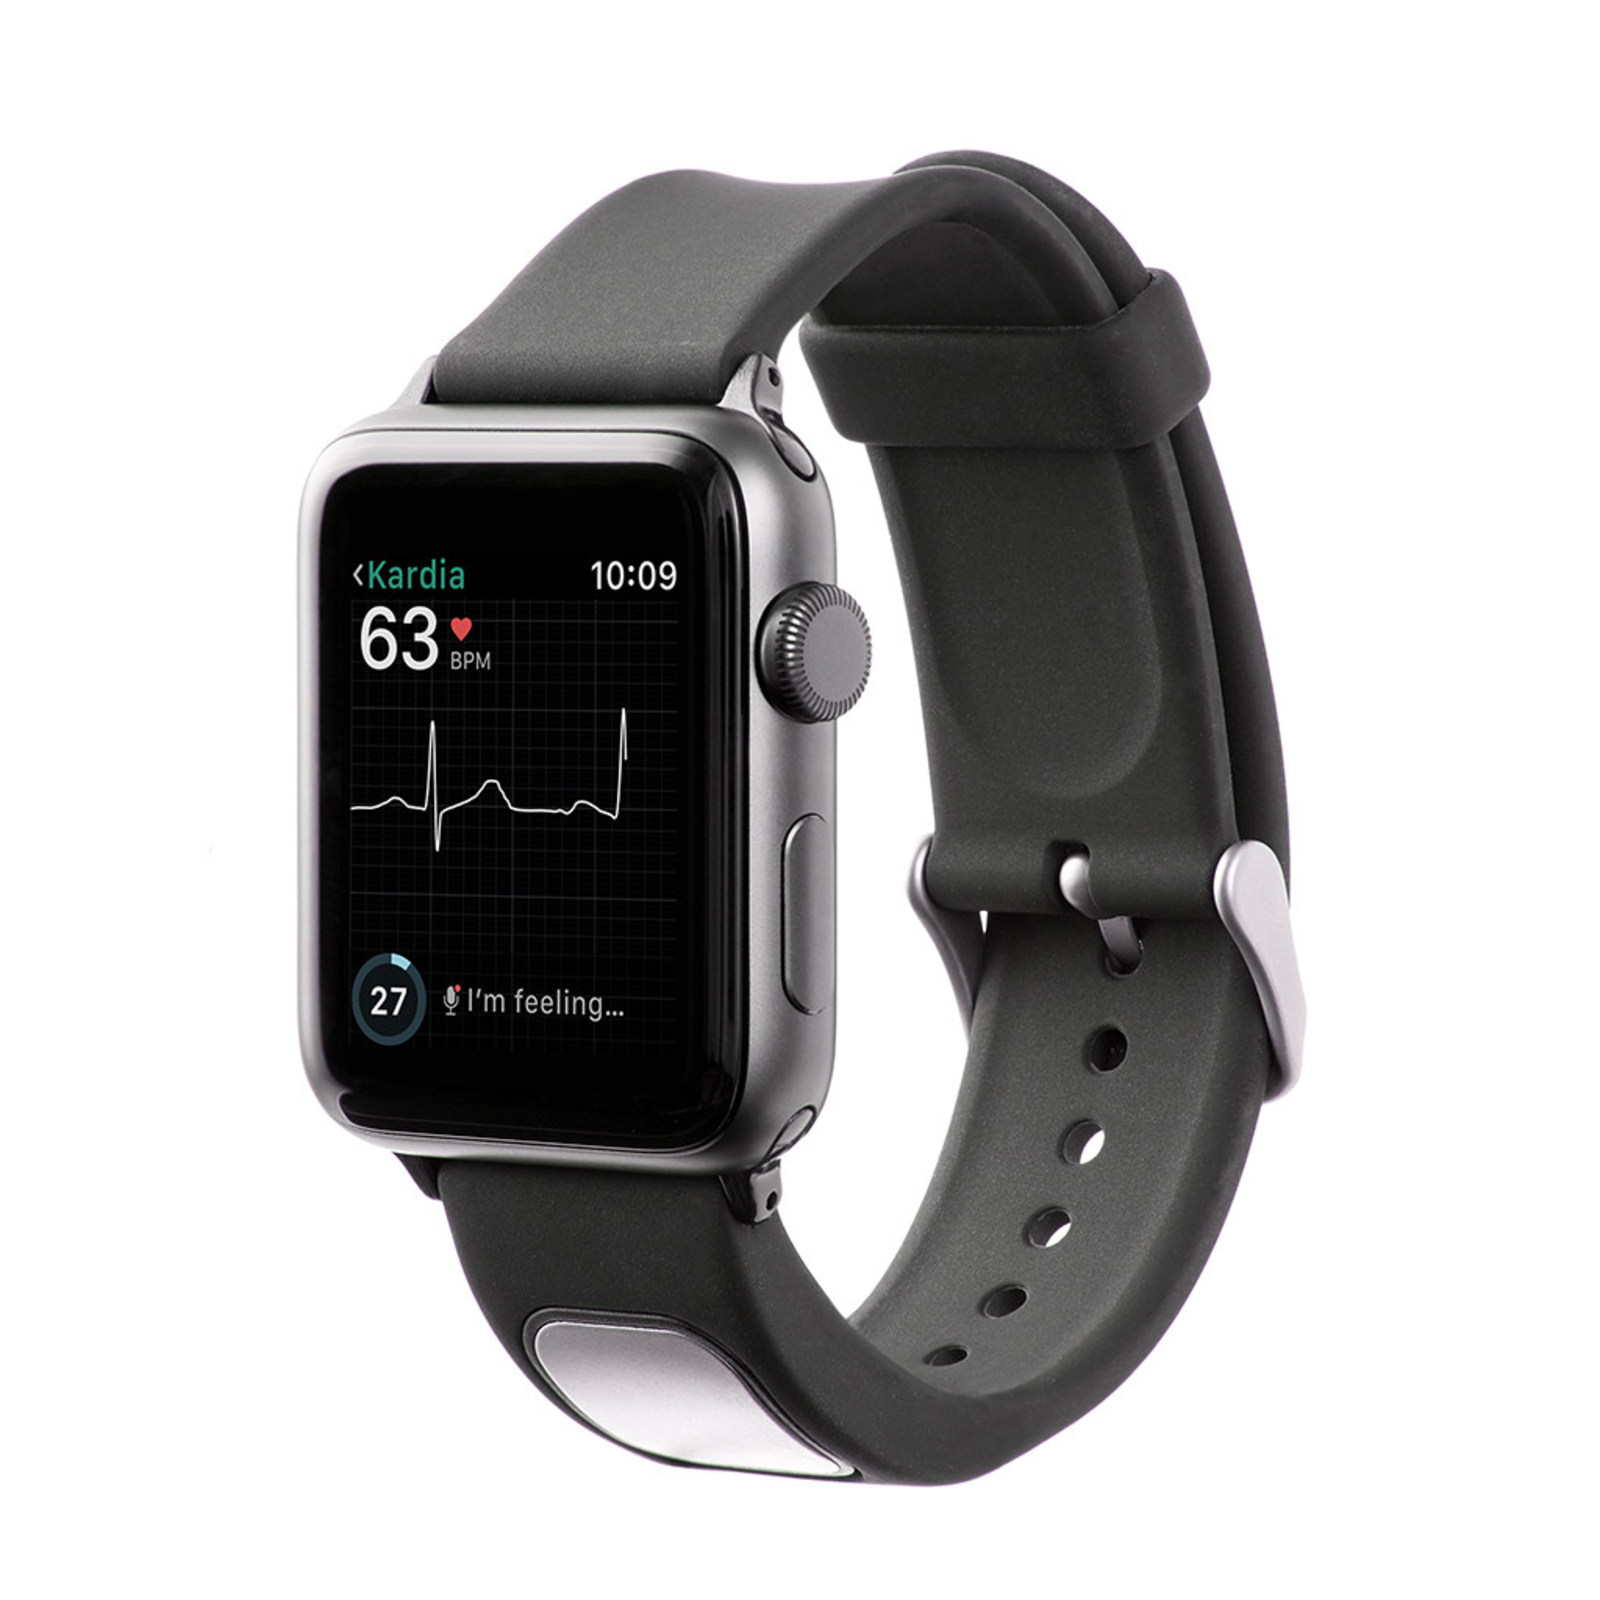 AliveCor's KardiaBand is first Apple Watch accessory to be cleared by FDA